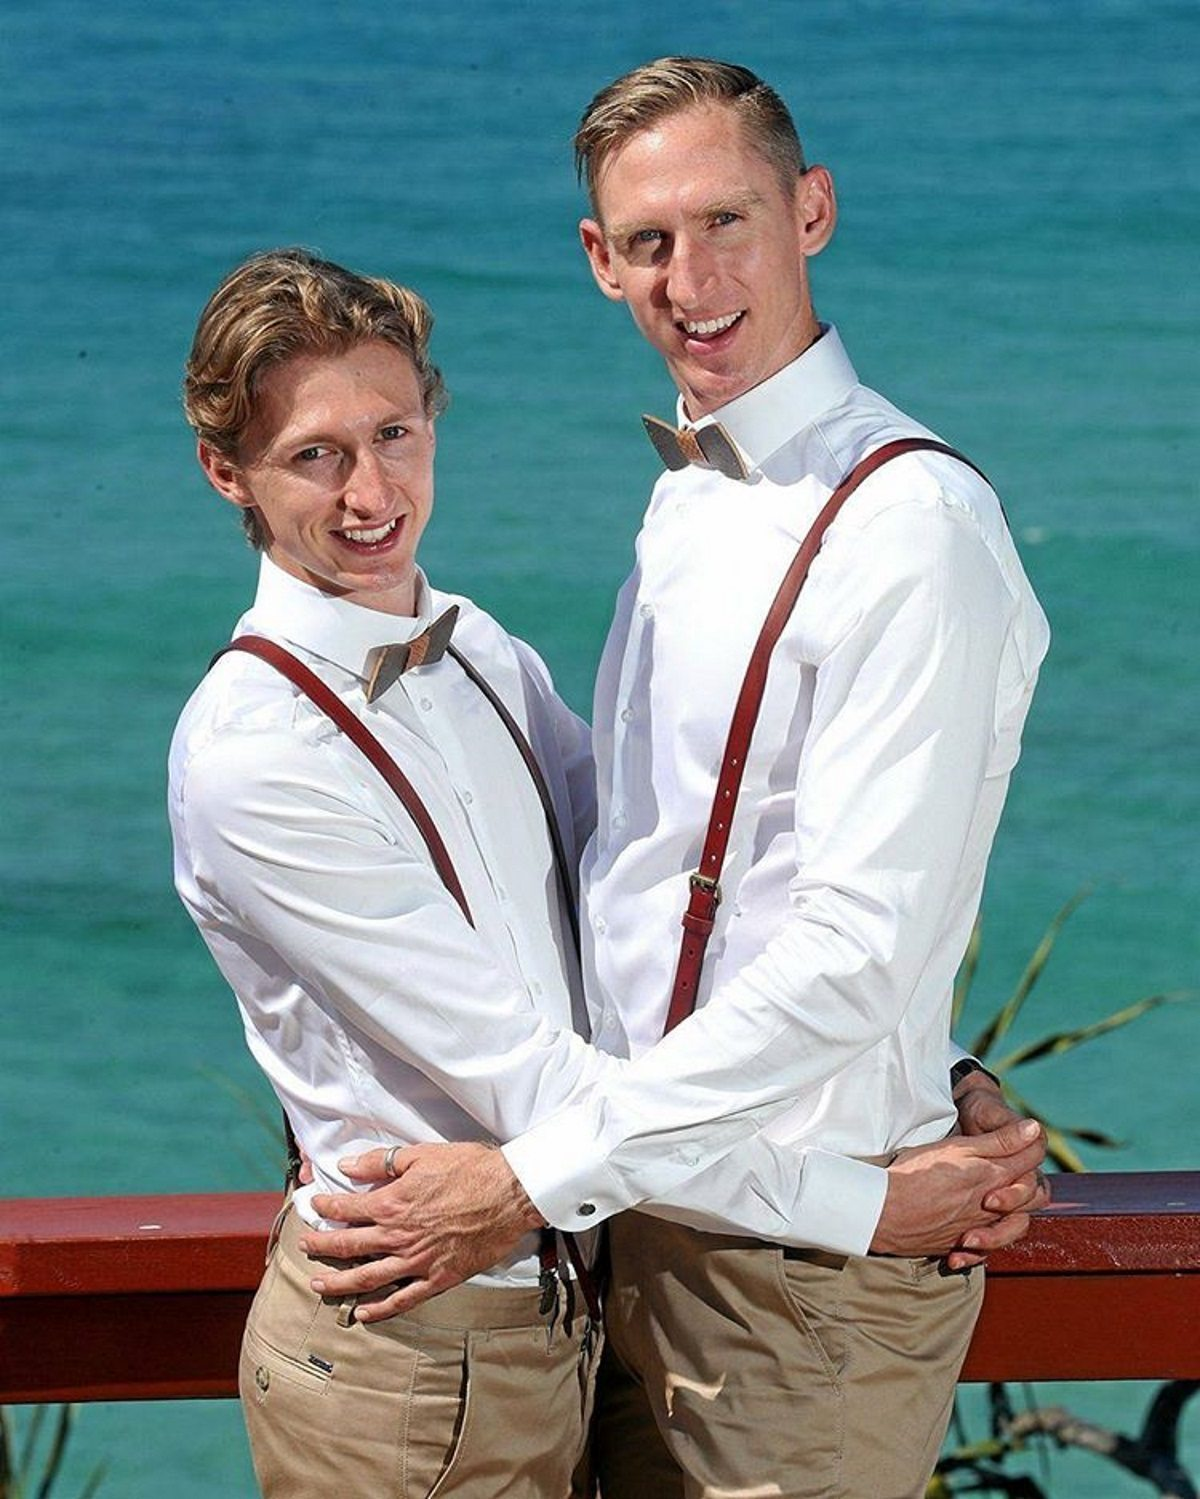 This Australian Gay Couple Married Just Minutes After Same